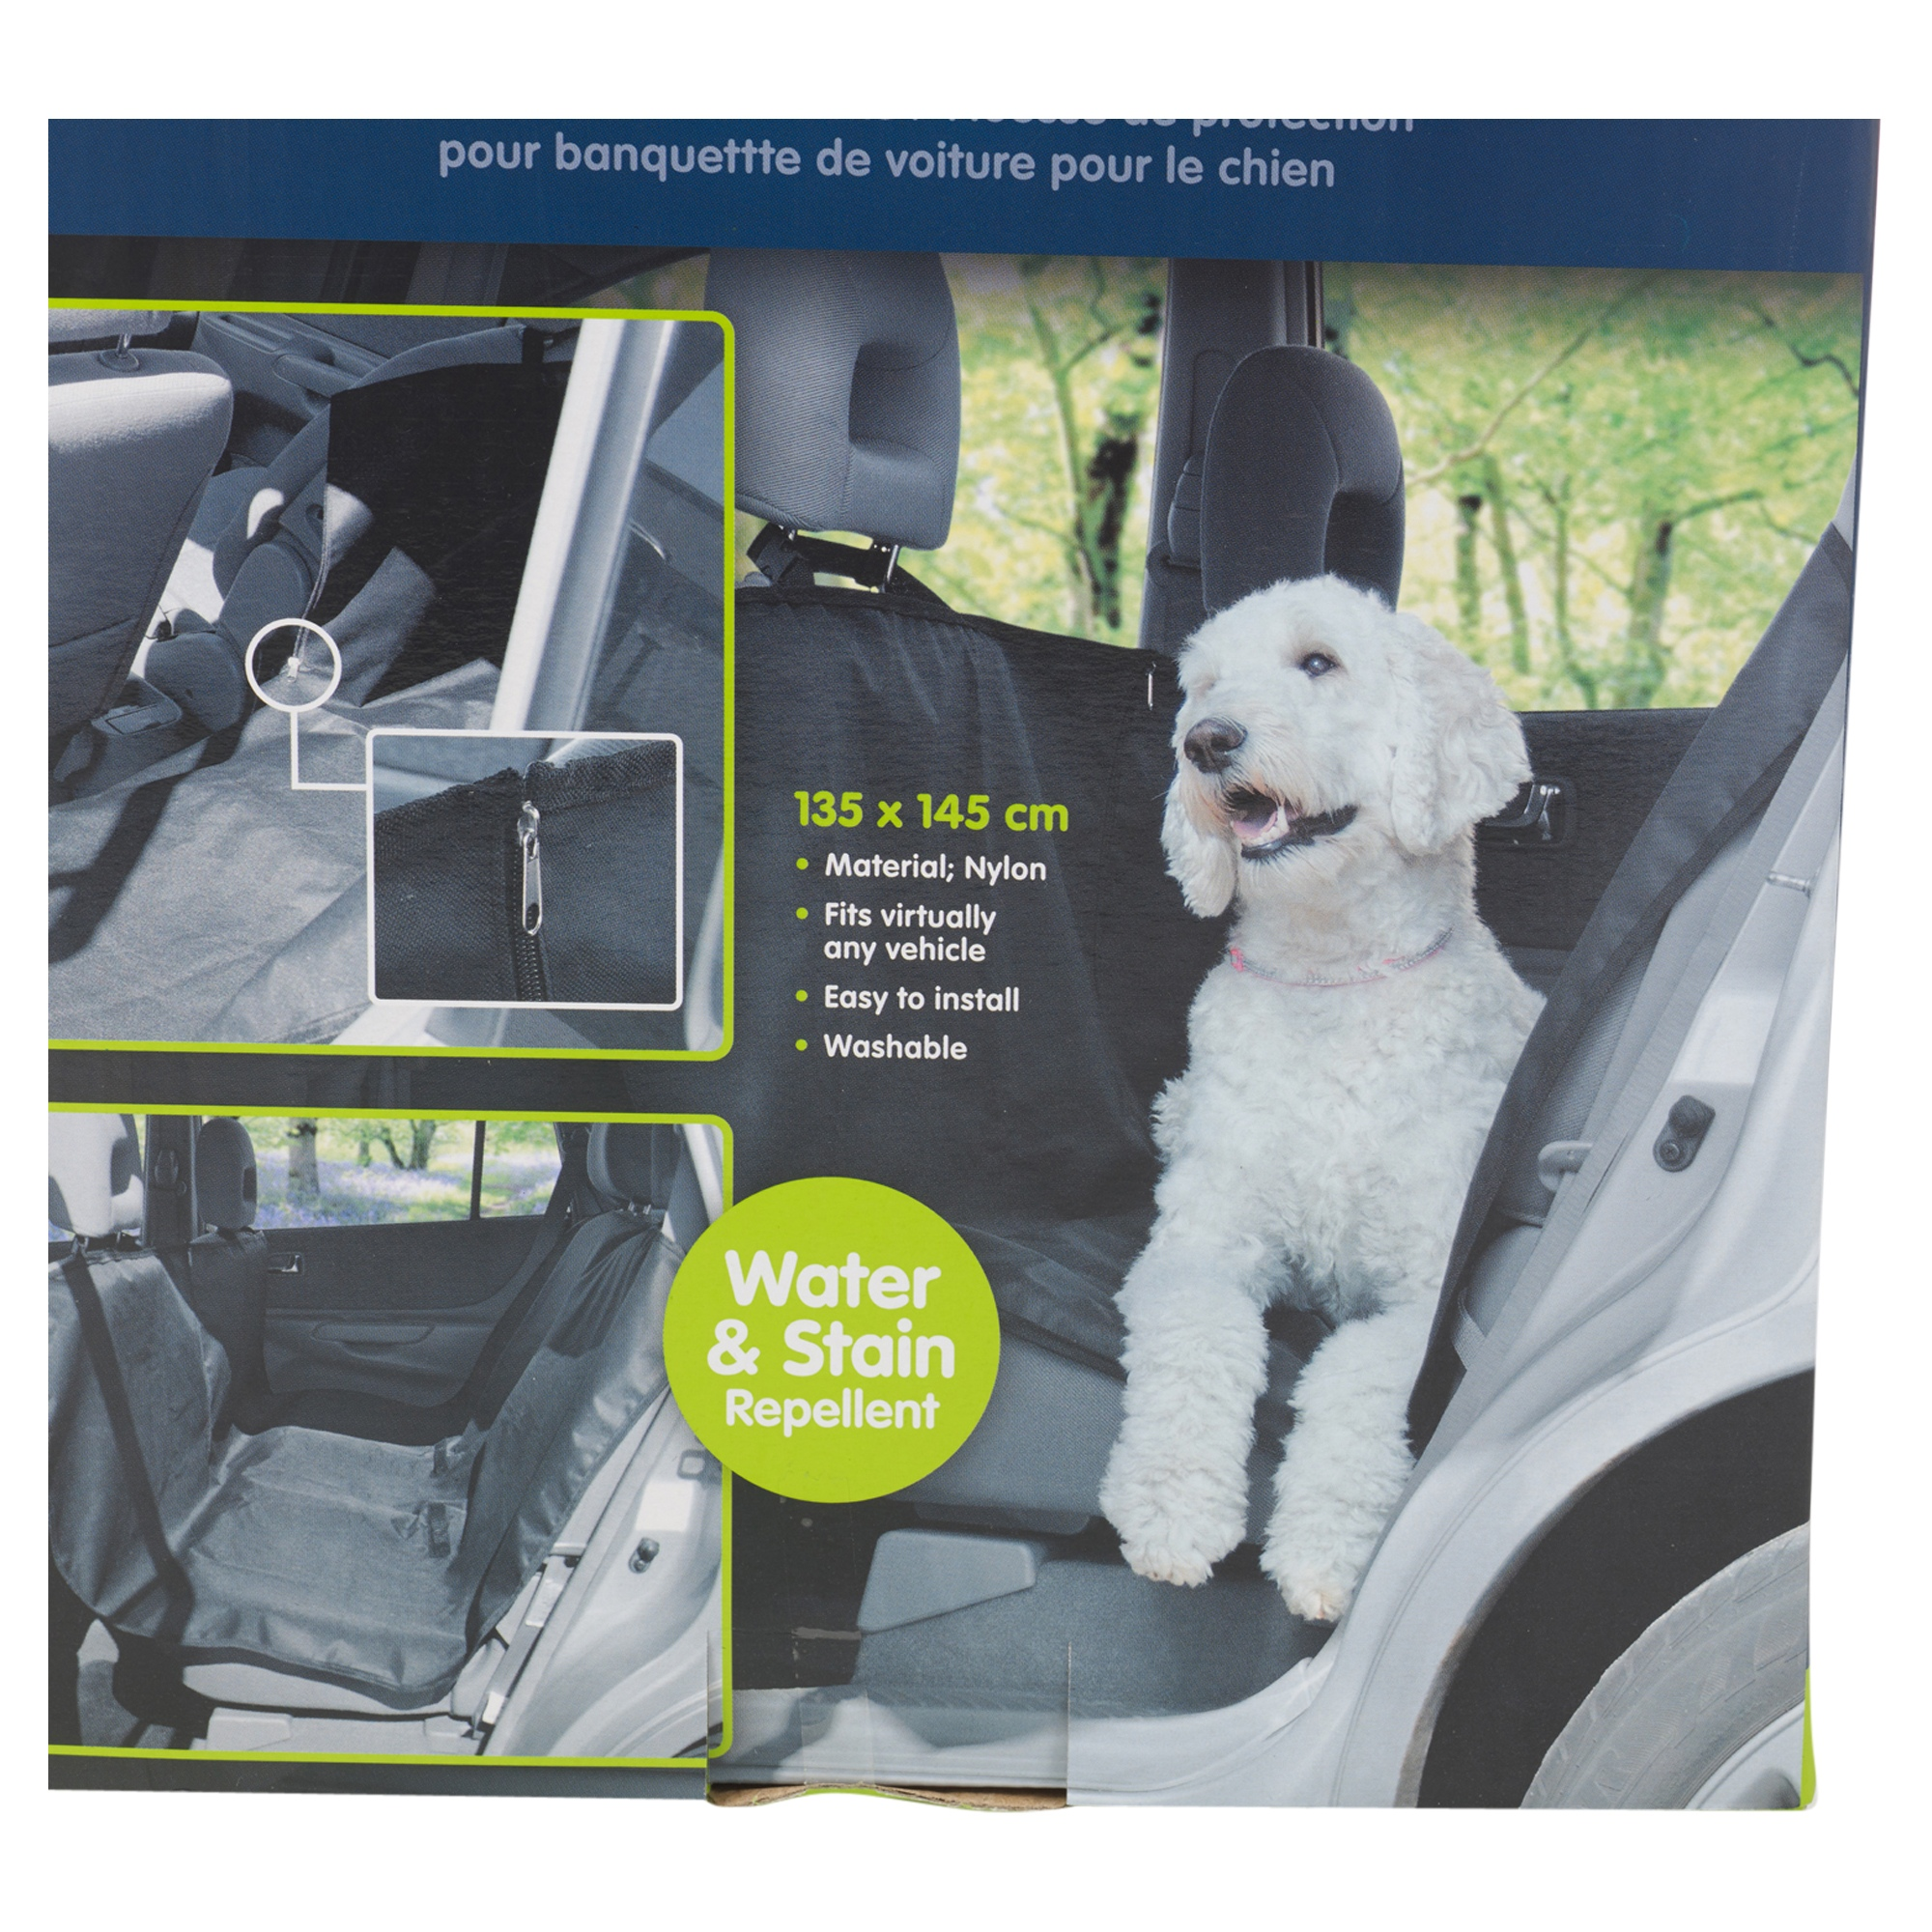 pets car seat cover protect dog animals washable nylon water stain repellent ebay. Black Bedroom Furniture Sets. Home Design Ideas